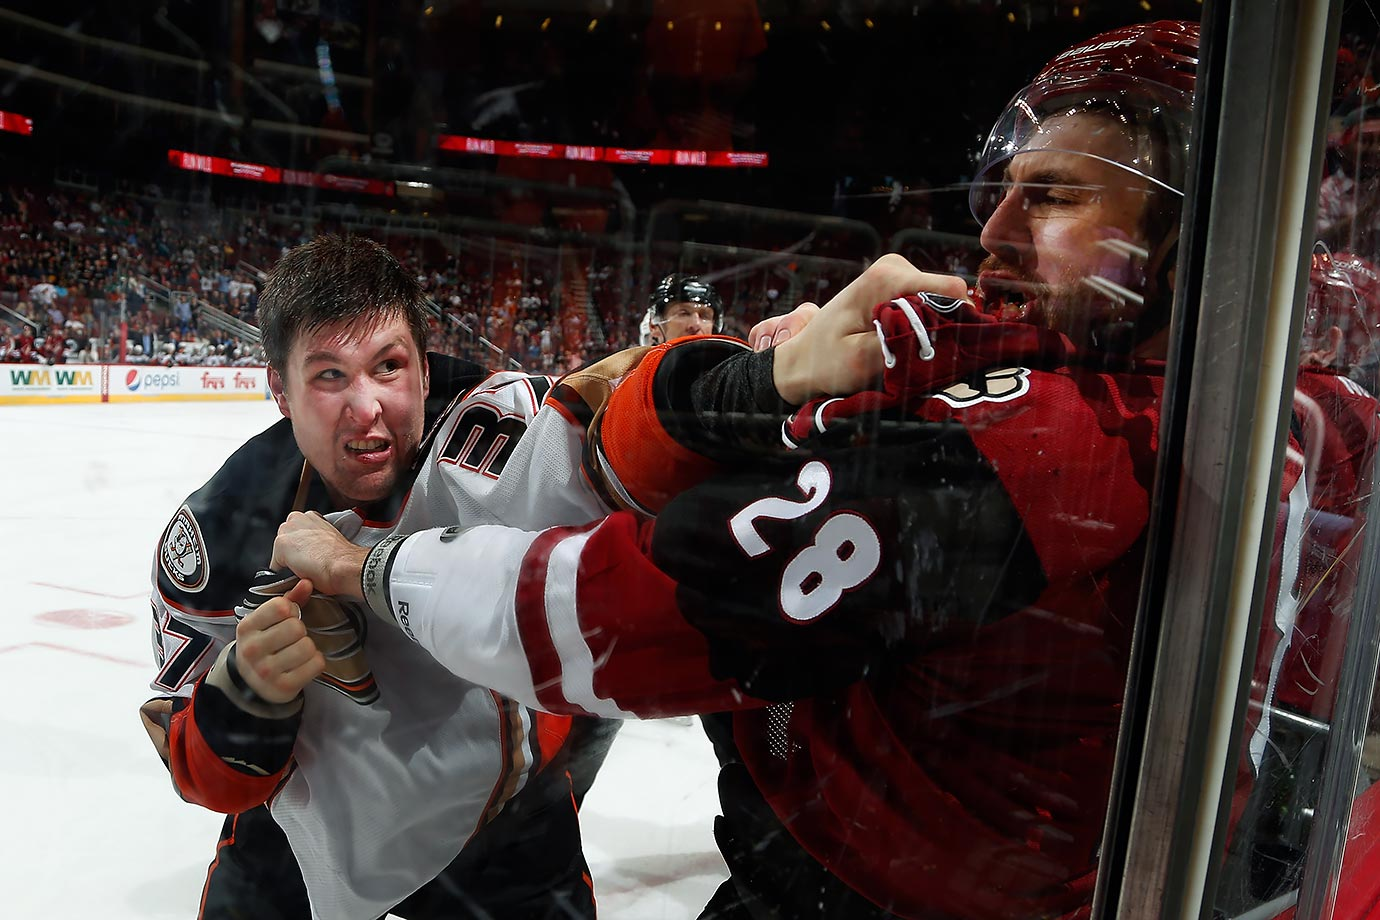 Anaheim Ducks left wing Nick Ritchie fights with Arizona Coyotes defenseman Jarred Tinordi during the third period of a game in Glendale, Ariz.